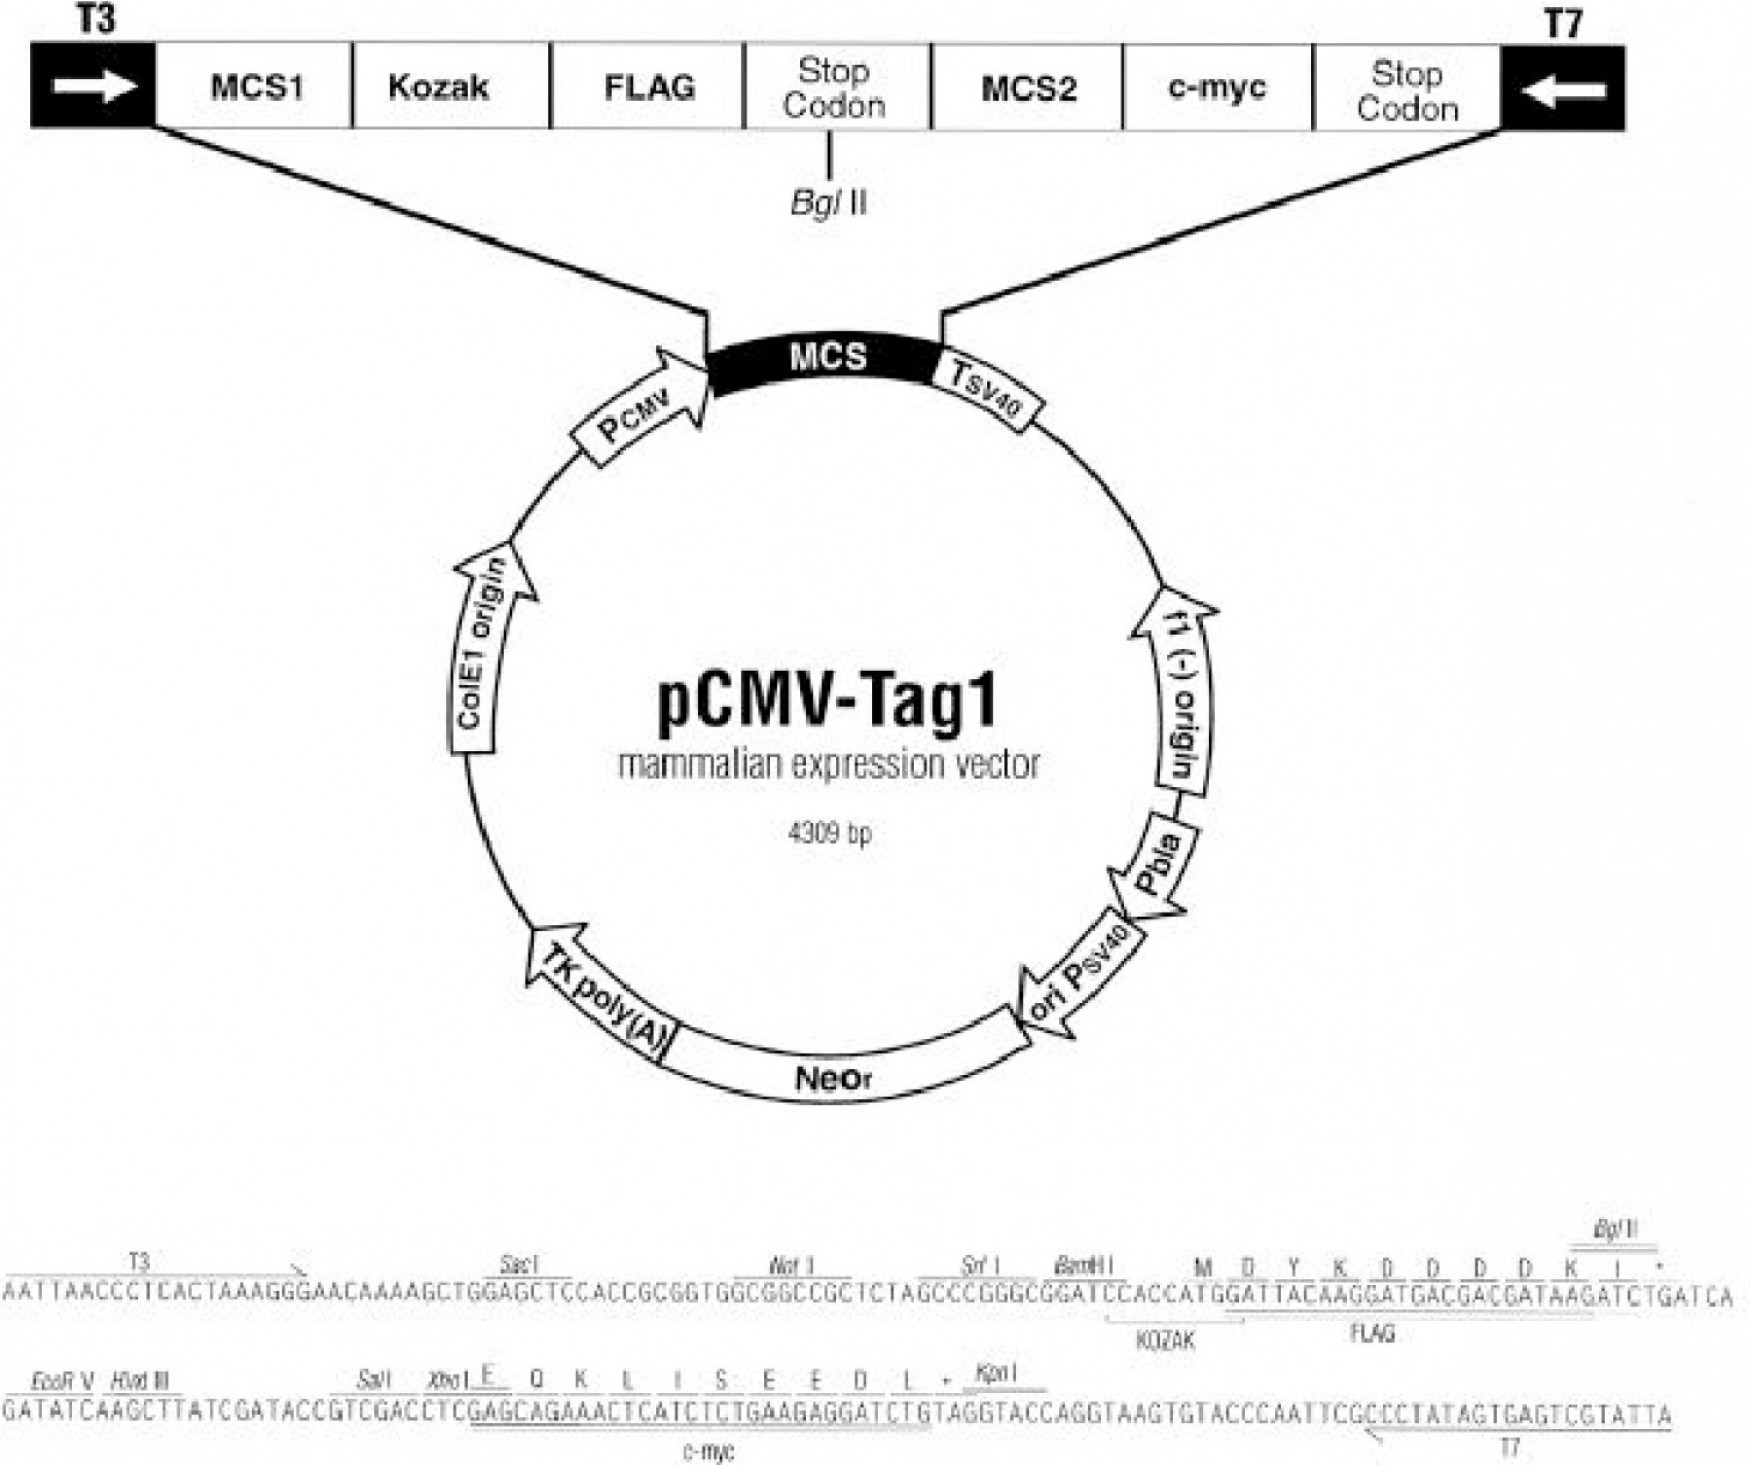 Mammalian Expression Vector: Versatile Epitope Tagging Vector For Gene In Cells